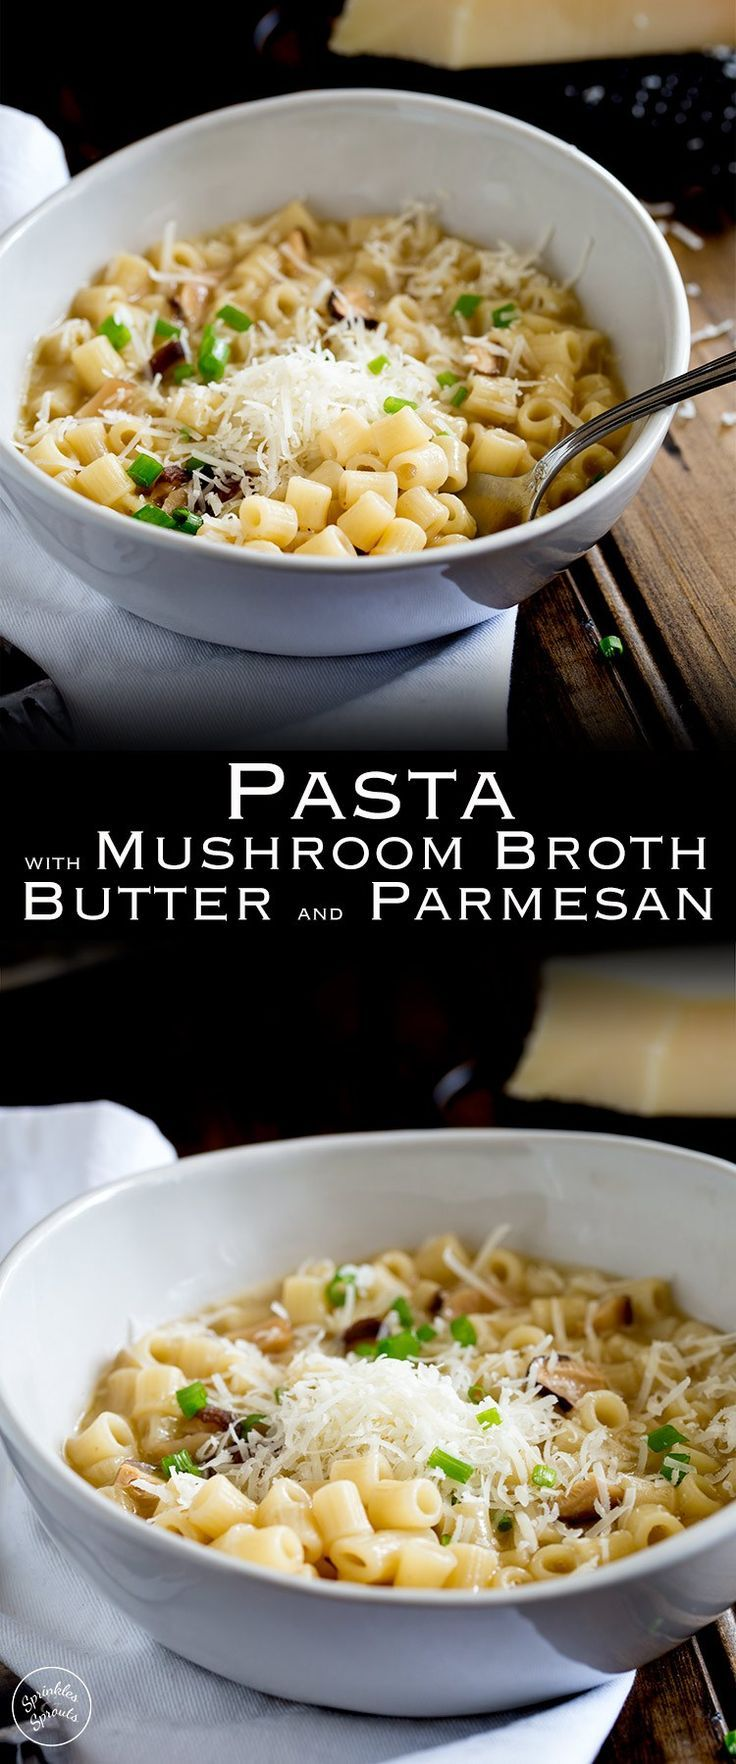 Pasta with Mushroom Broth, Butter and Parmesan. A comforting bowl of pasta with mushroom broth, butter and parmesan. This vegetarian pasta dish is sure you make a regular appearance on your menu as it is quick and easy and tastes amazing. Dried mushrooms form the basis for this simple pasta dish that will please vegetarians and meat-eaters alike! From www.sprinklesands...